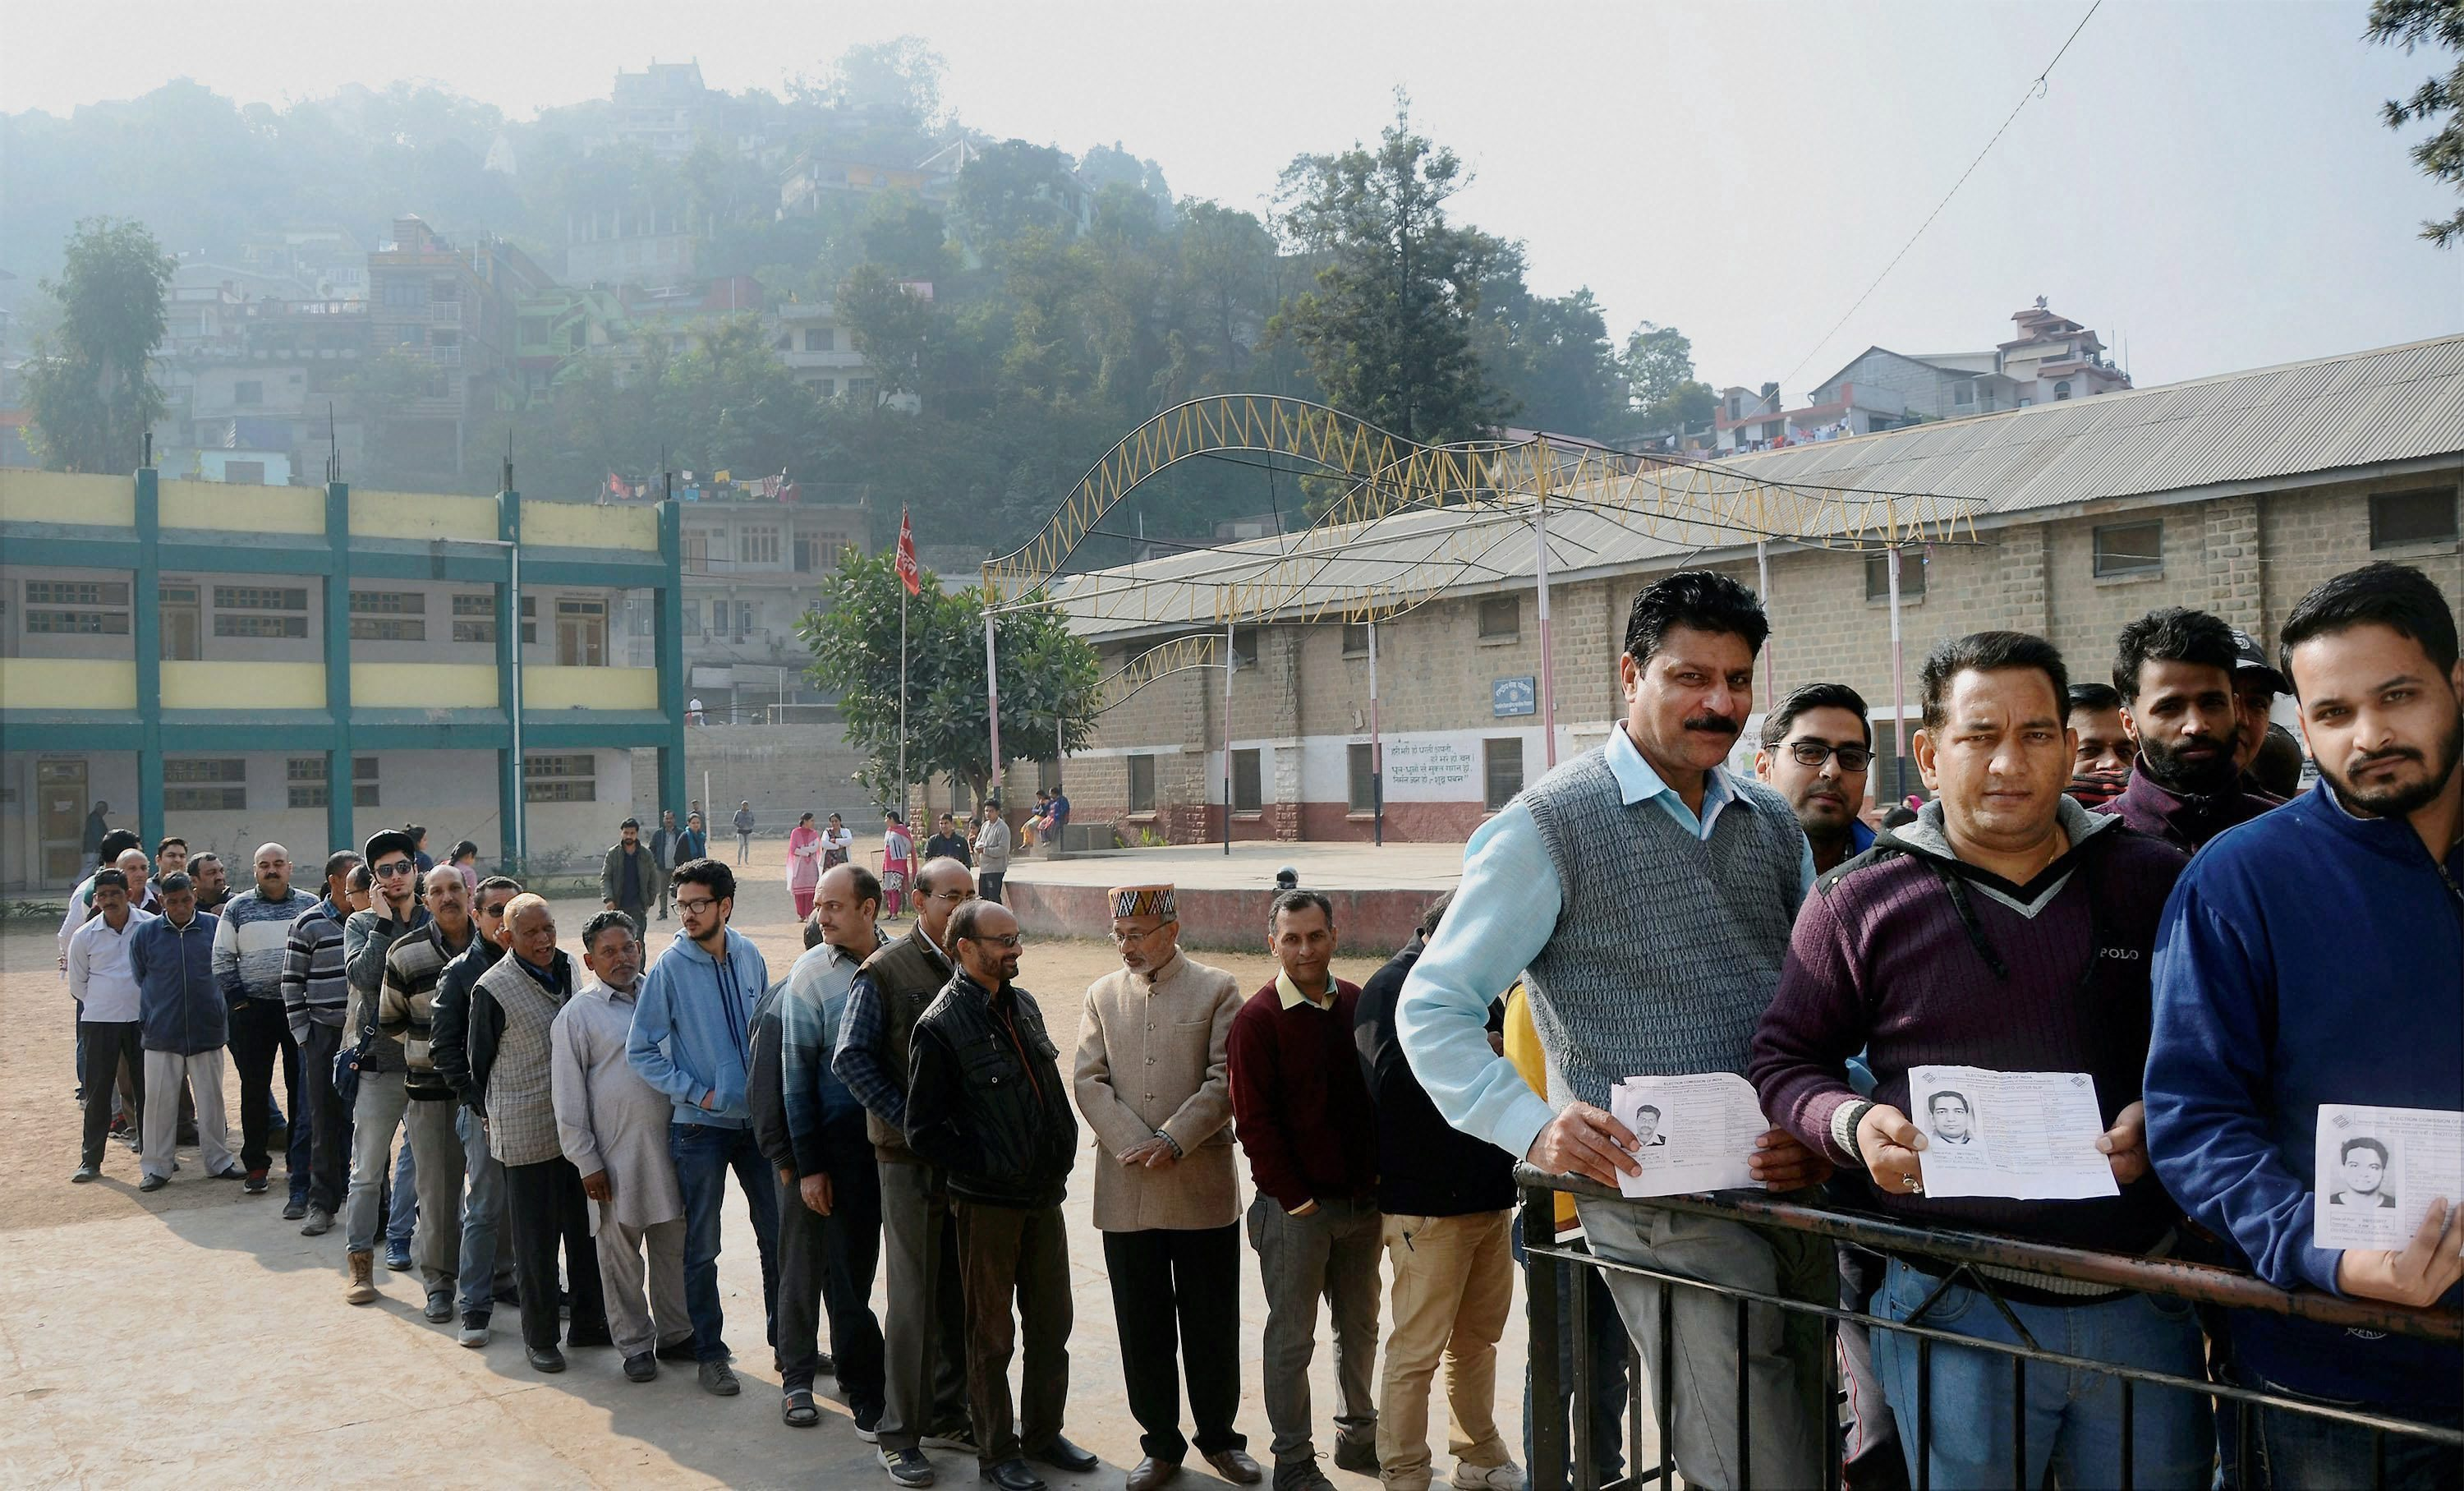 Mandi: Voters in a queue show their voter identity card at a polling booth in Mandi, Himachal Pradesh on Thursday. PTI Photo (PTI11_9_2017_000015B)